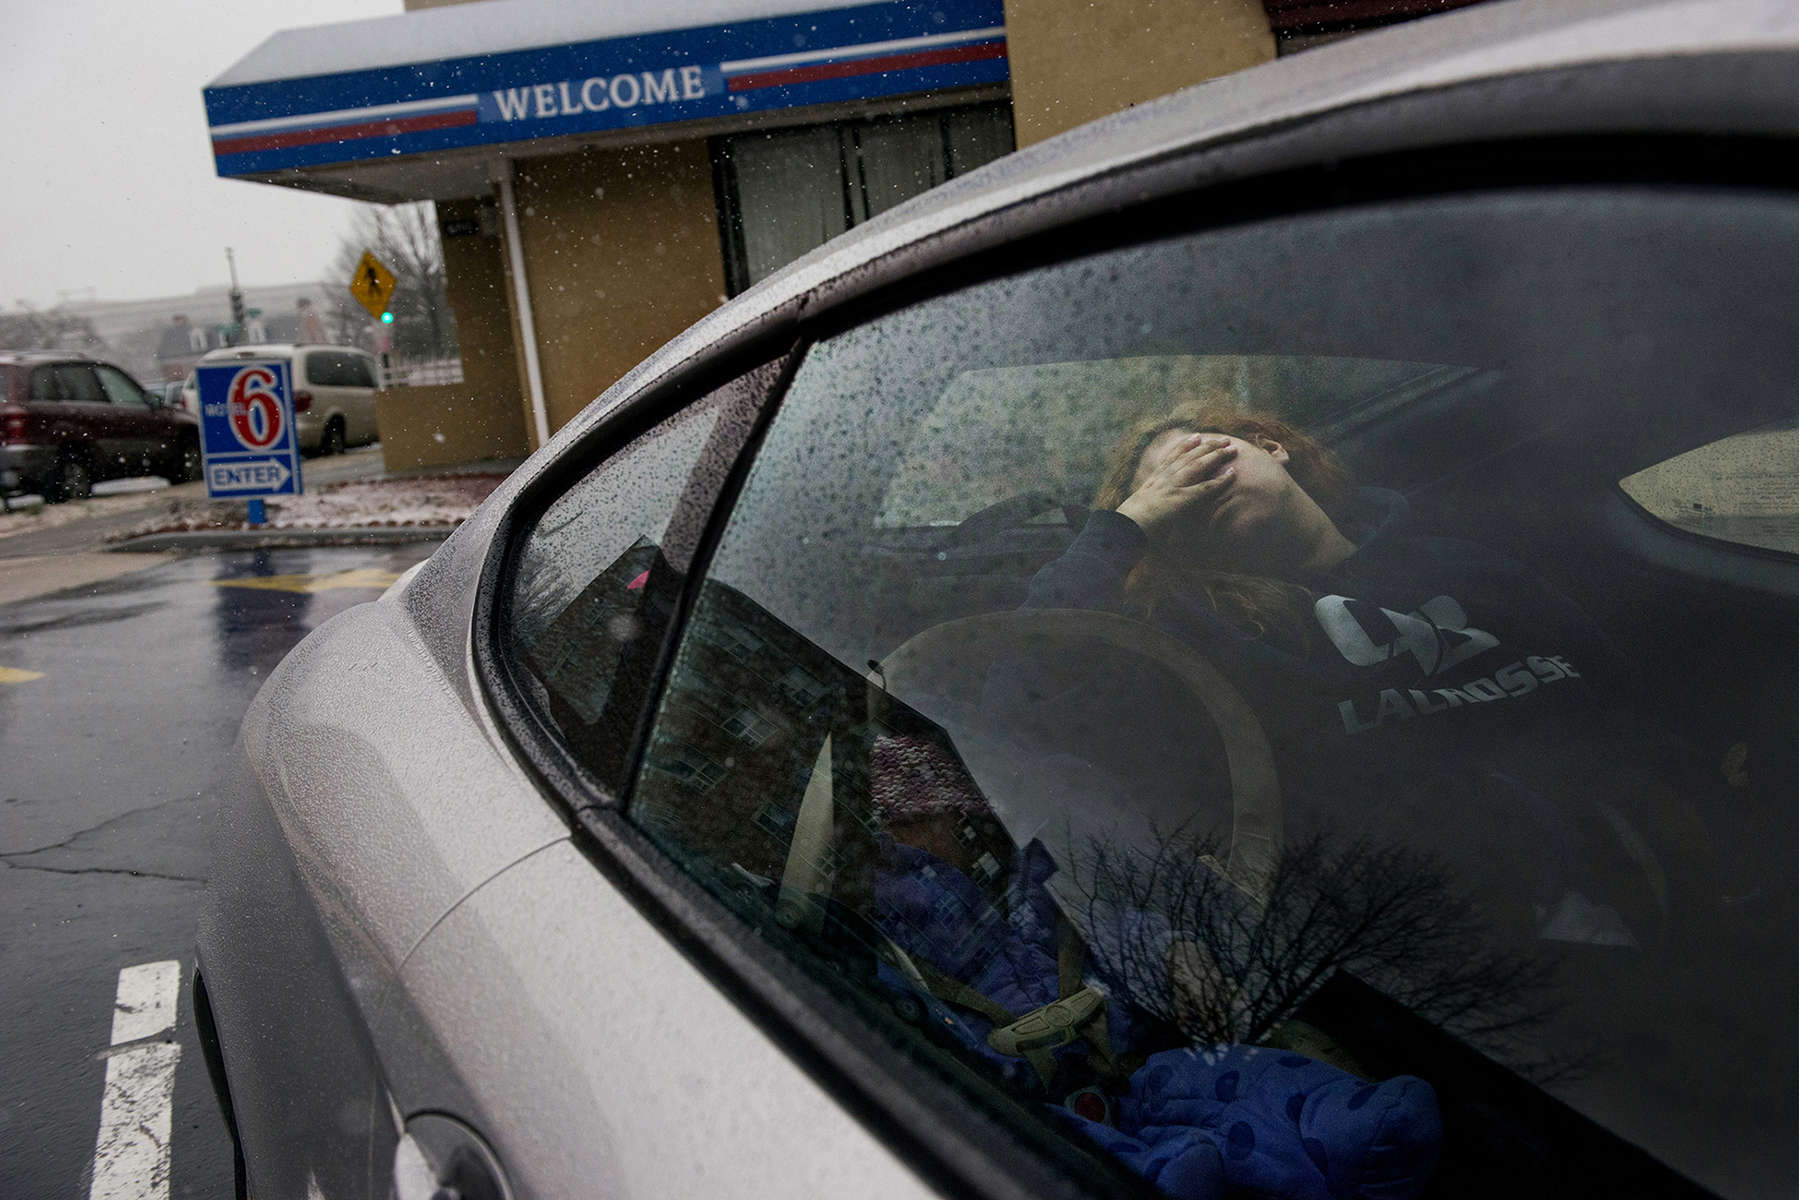 WASHINGTON, DC - JANUARY 21:   Melissa Morales rests in the back of the car while waiting to hear if her family would be given emergency shelter at the Motel 6 in place of DC family shelters on Tuesday, January 21, 2014 in Washington, D.C. Morales and her family were among the dozens of families lined up at the city's homeless intake center Monday seeking shelter for the night from the accumulating snow and freezing weather.  (Photo by Amanda Voisard/For the Washington Post)